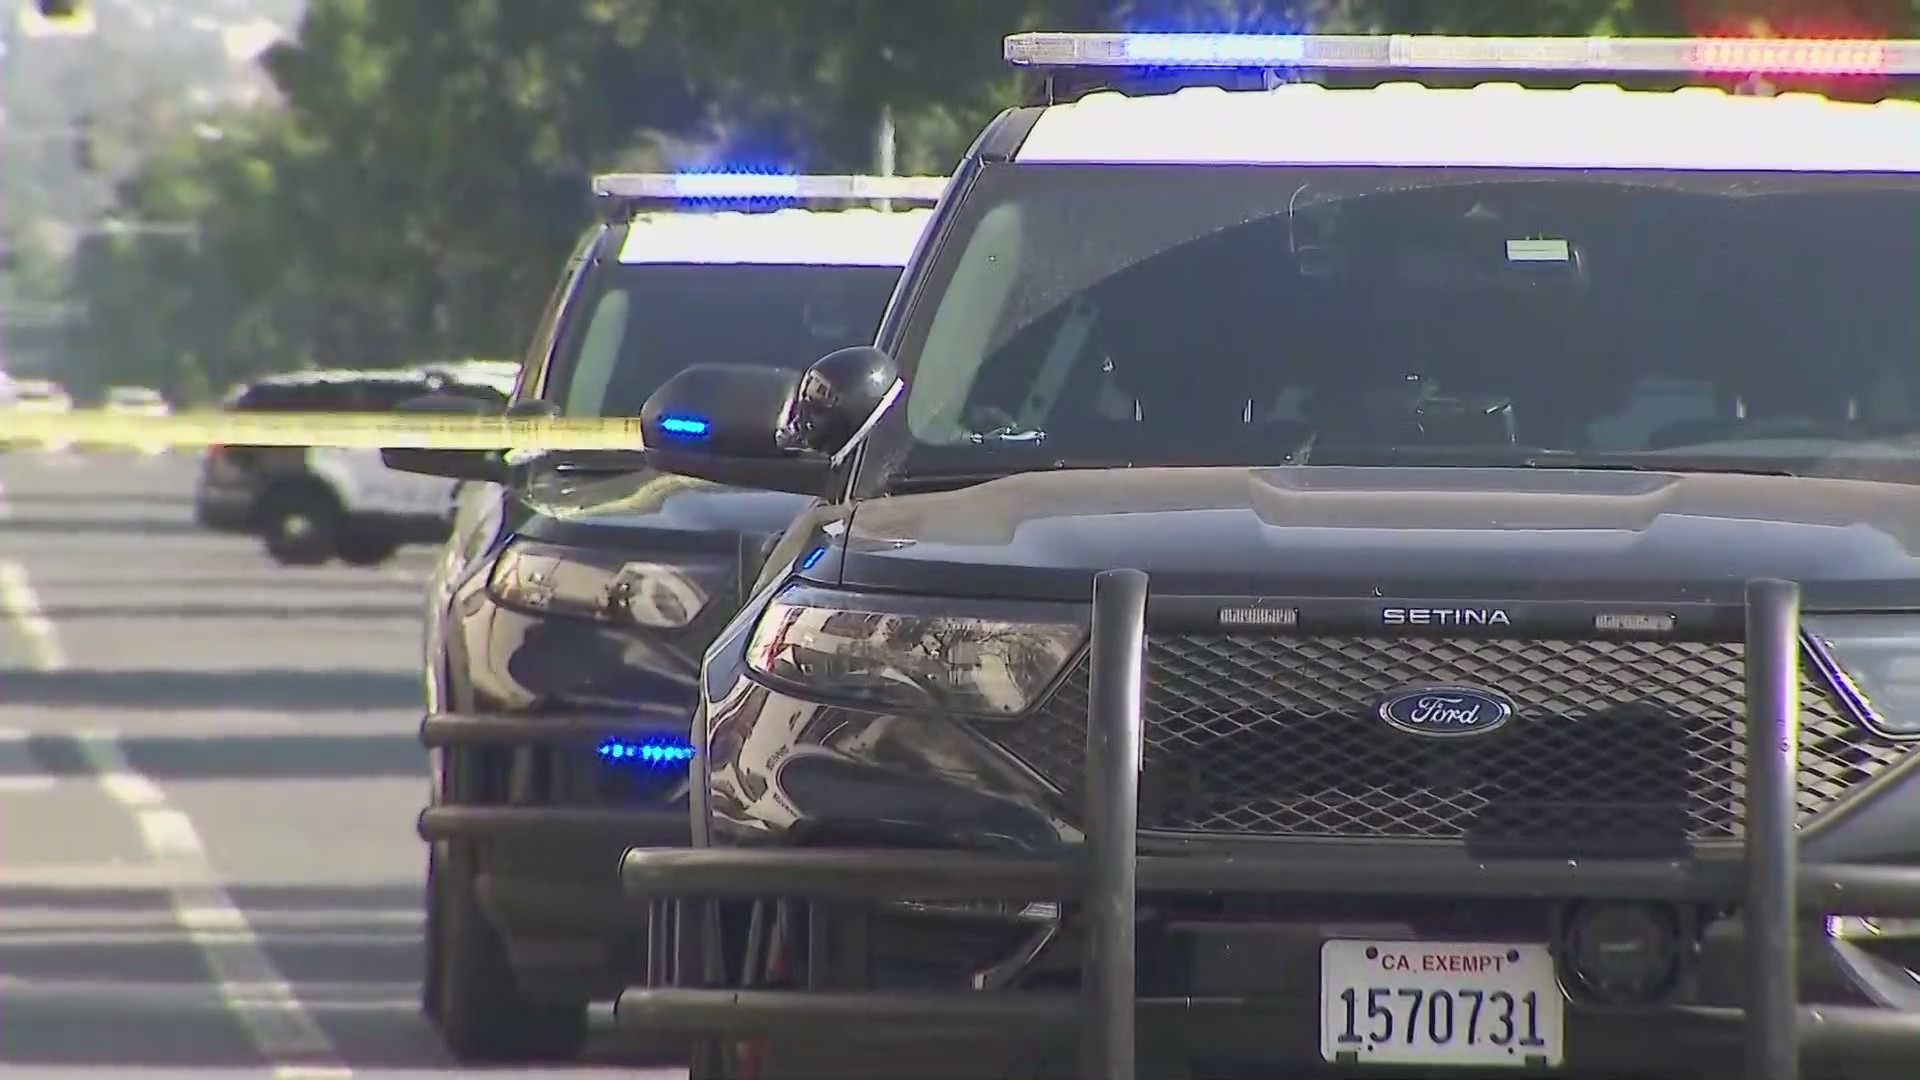 Glendale Police Department officers are investigating a shooting and stabbing on Sept. 19, 2021. (KTLA)